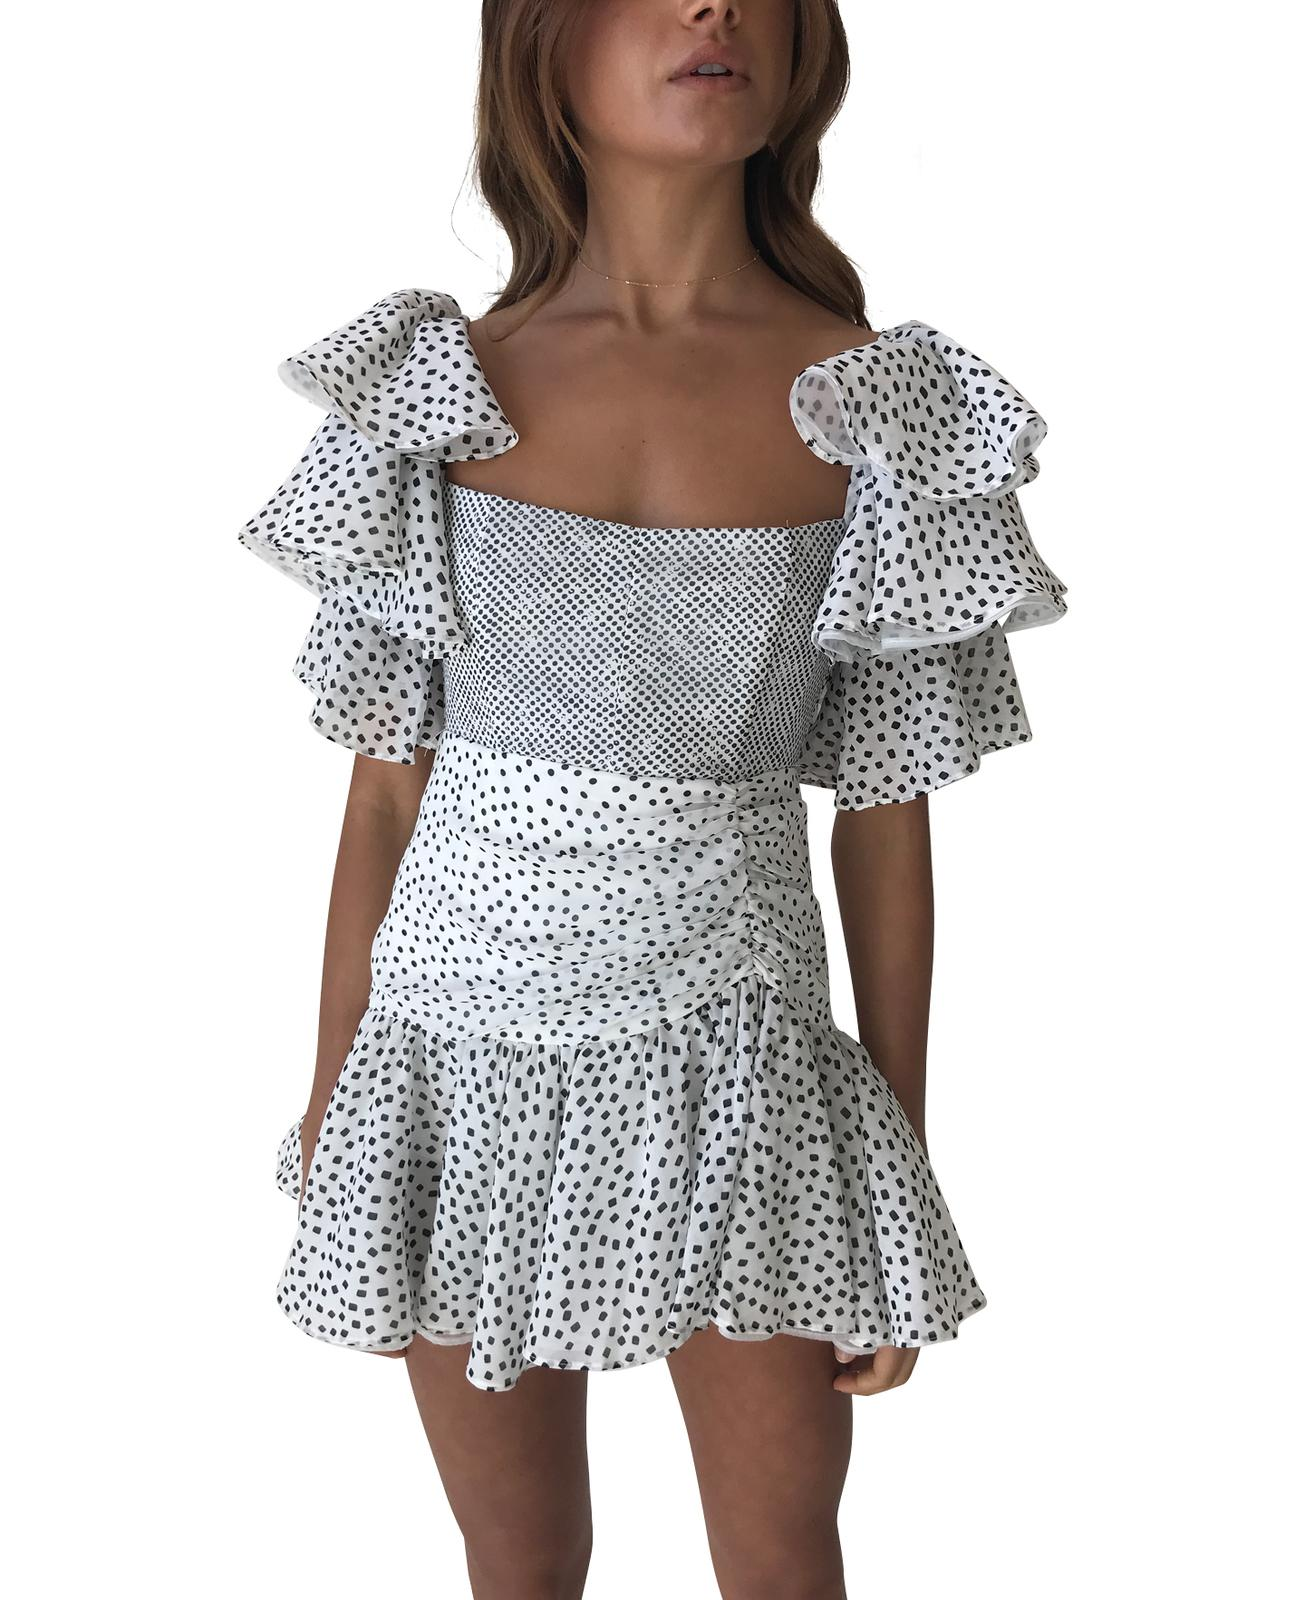 It's just an image of Critical Sofia the Label Florence Mini Dress